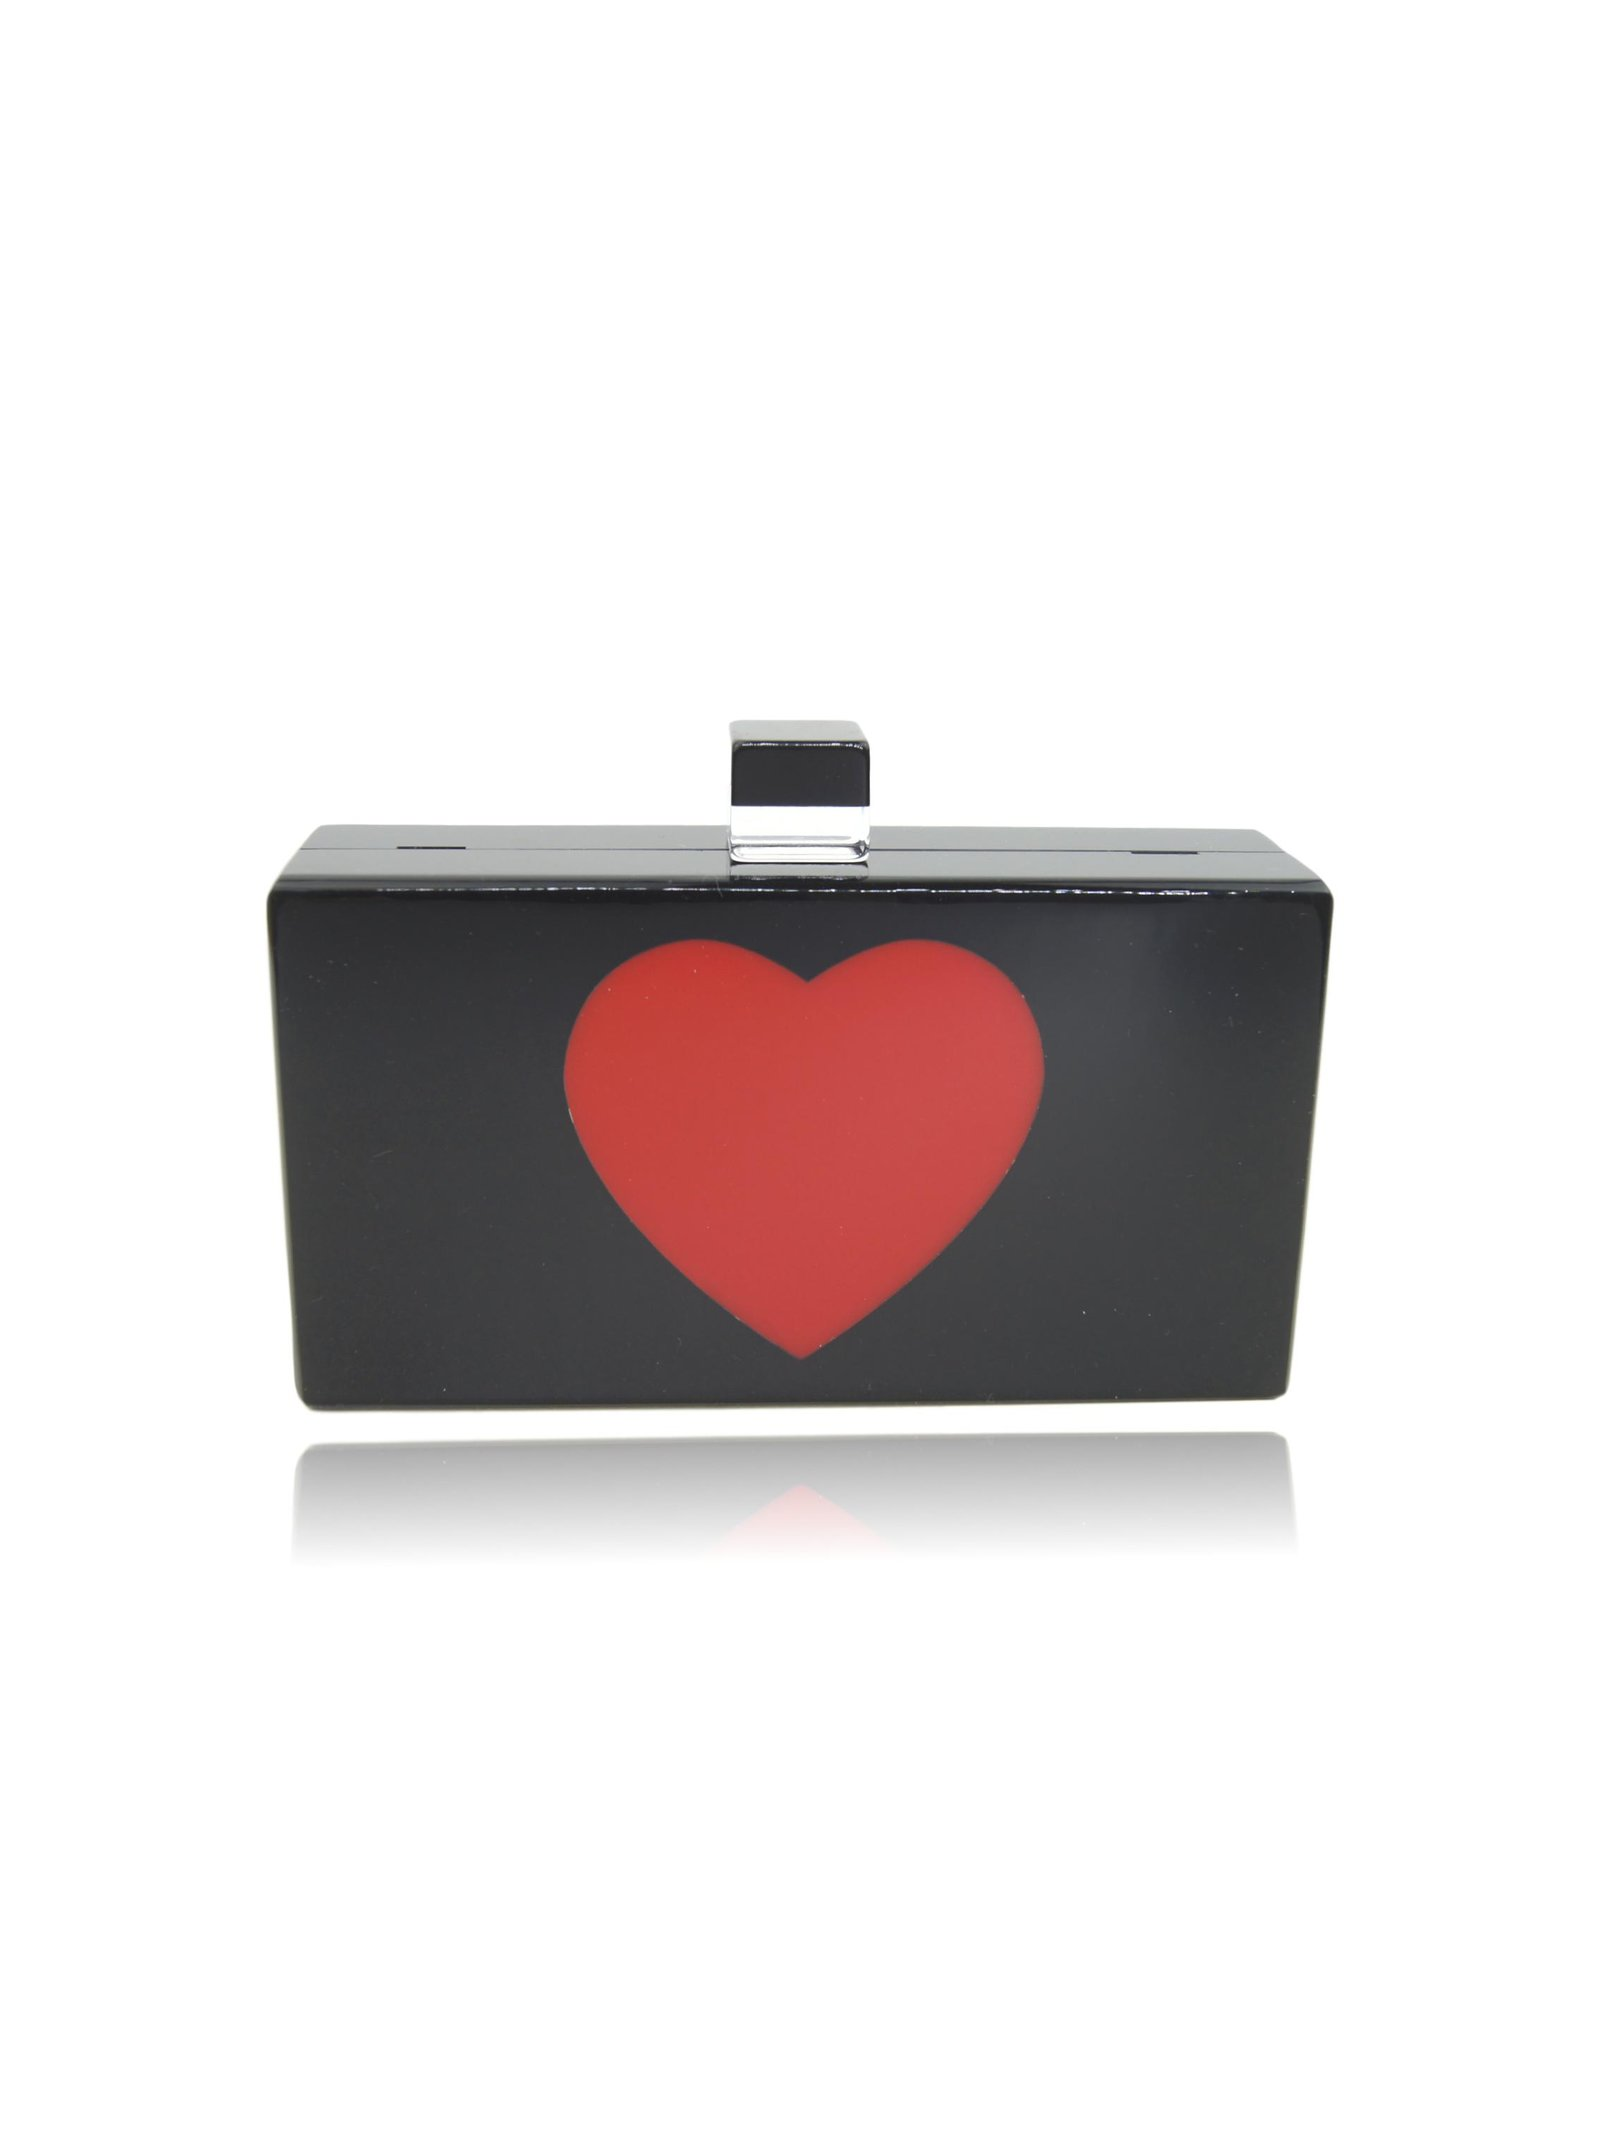 Milanblocks Black Heart Acrylic Clutch